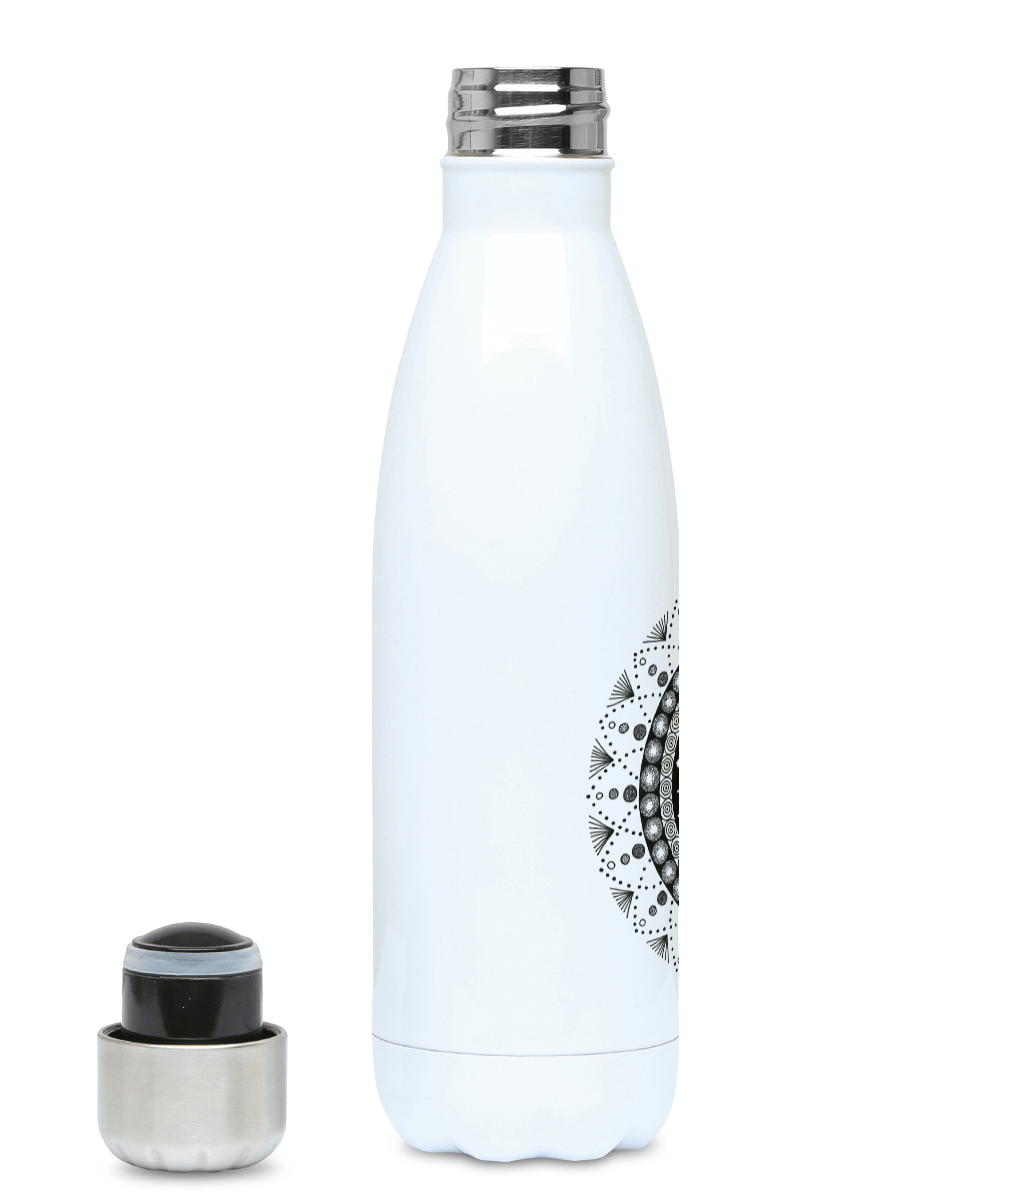 500ml Water Bottle 'Cancer' - Rebecca Leah Designs